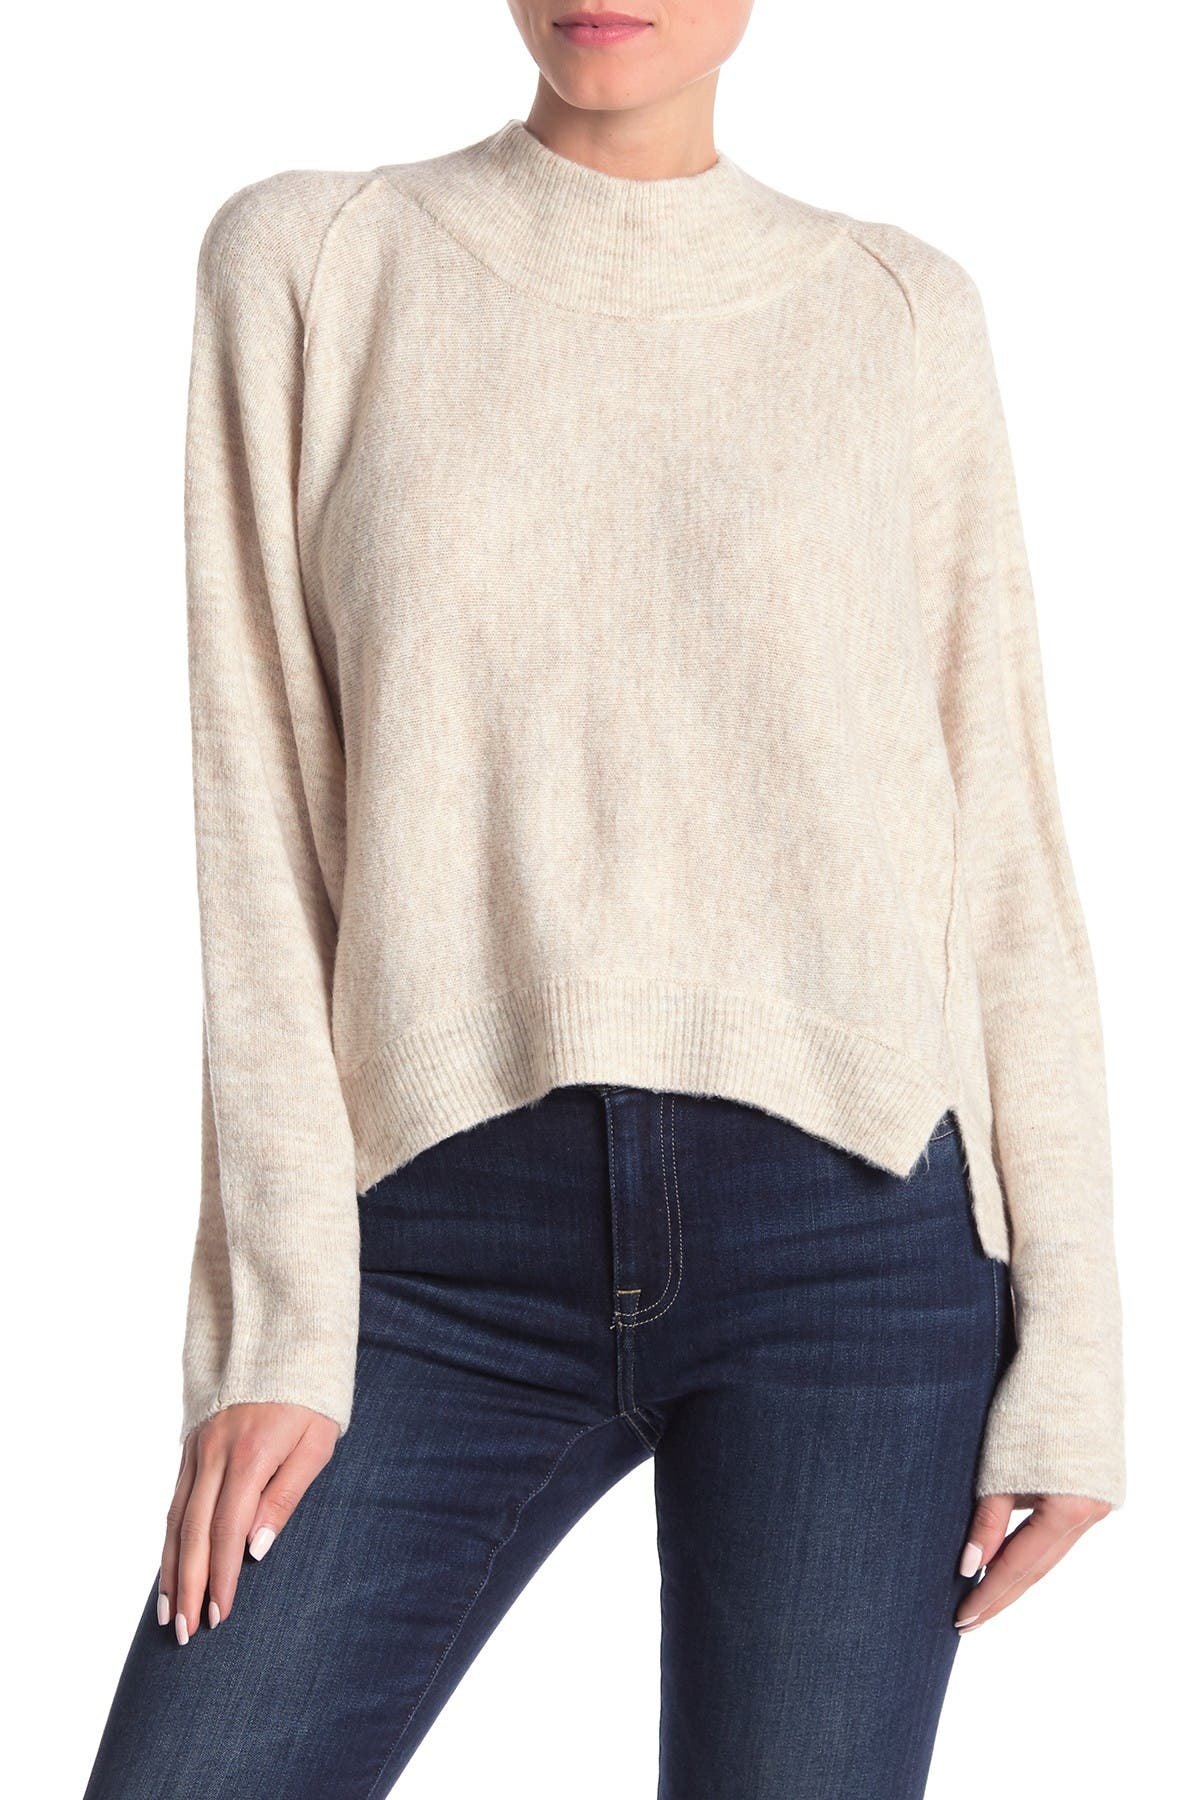 Image of Melrose and Market Forward Seamed Dolman Sleeve Pullover Sweater